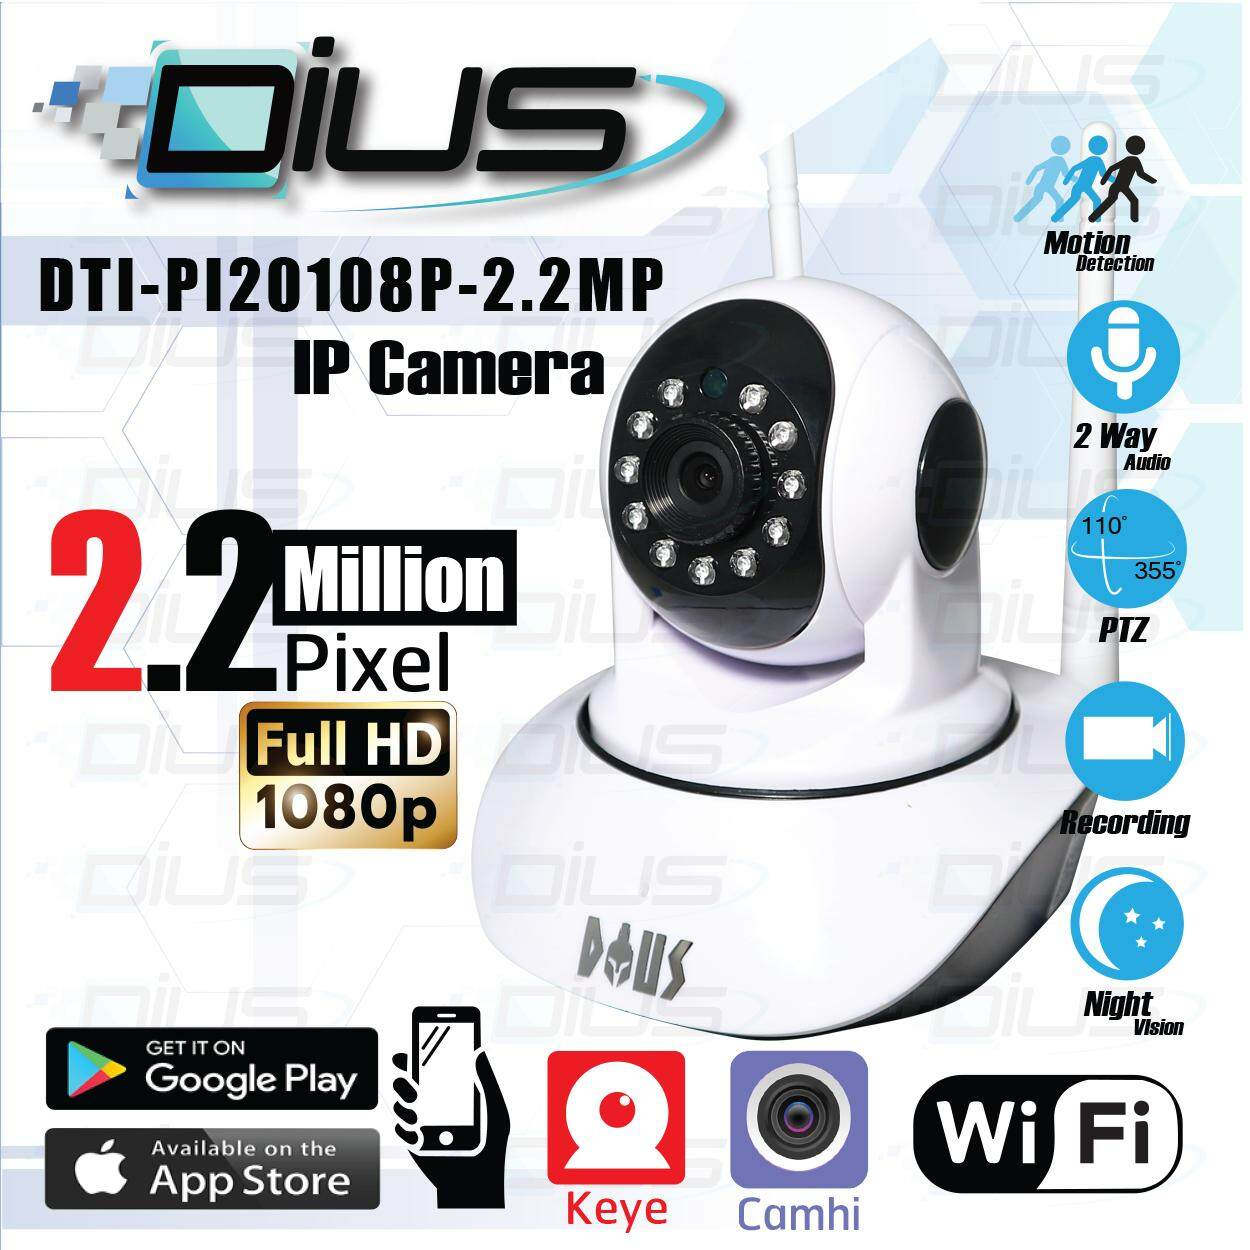 กล้องวงจรปิด Full HD 1080p Wifi / Wirless IP camera 2.2 Megepixel / Day&Night / Infrared - Night Vision / Pan,Till, Zoom / Two way Talk . 2 เสา ฟรีอะแดปเตอร์+ฟรี ( App : Keye ) and ( App : Camhi )